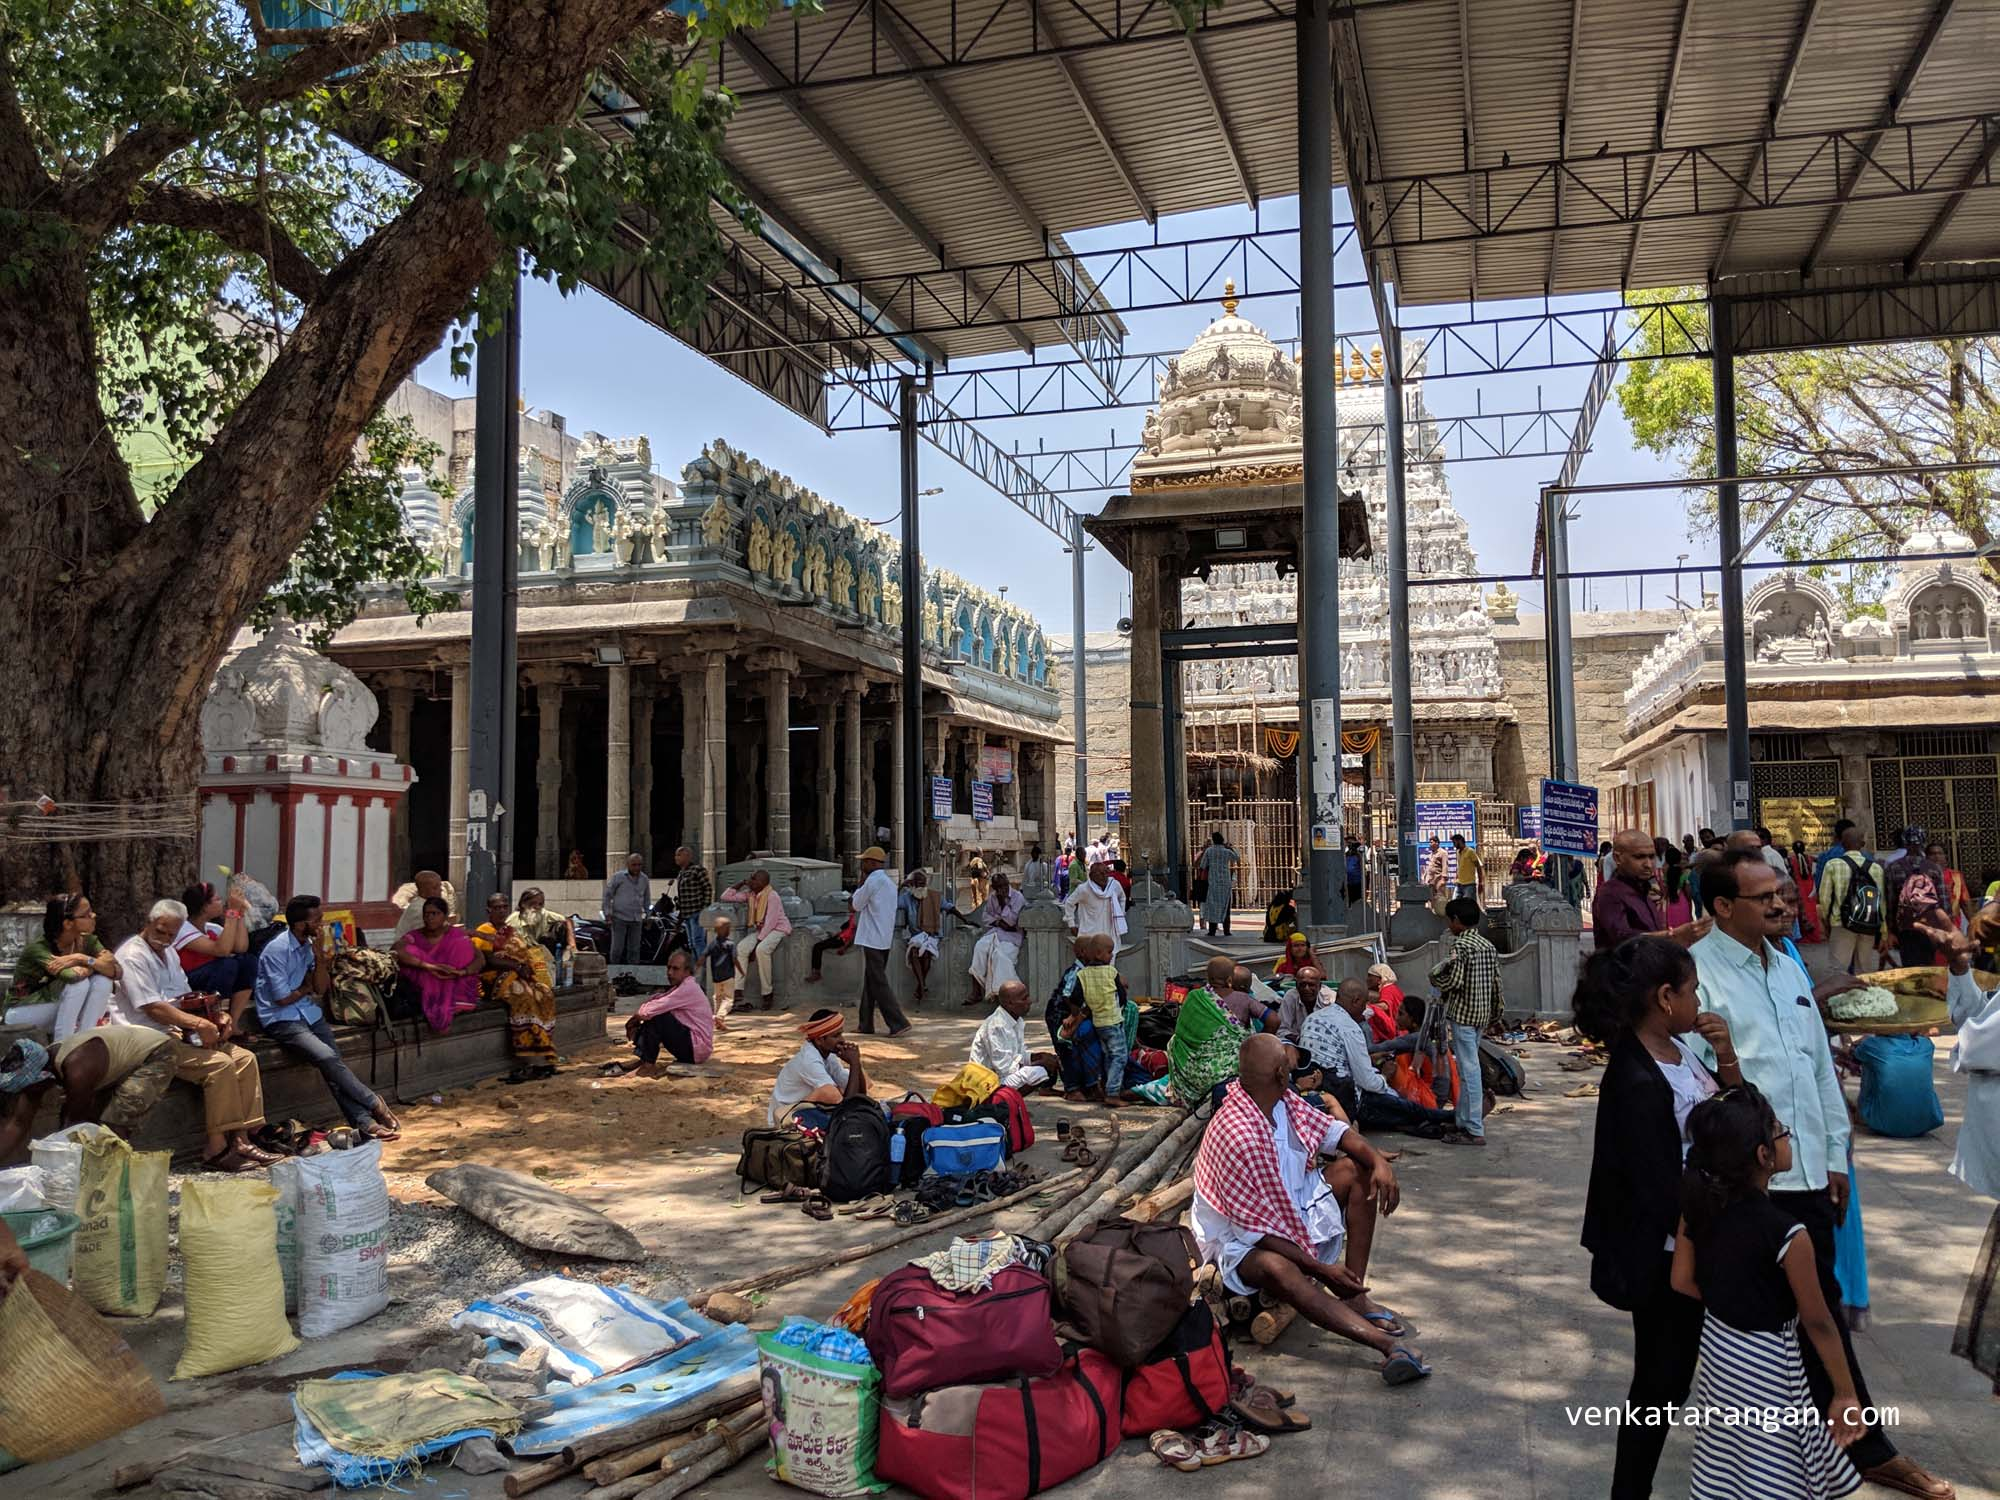 Devotees waiting outside the temple in the shade after having the darshan